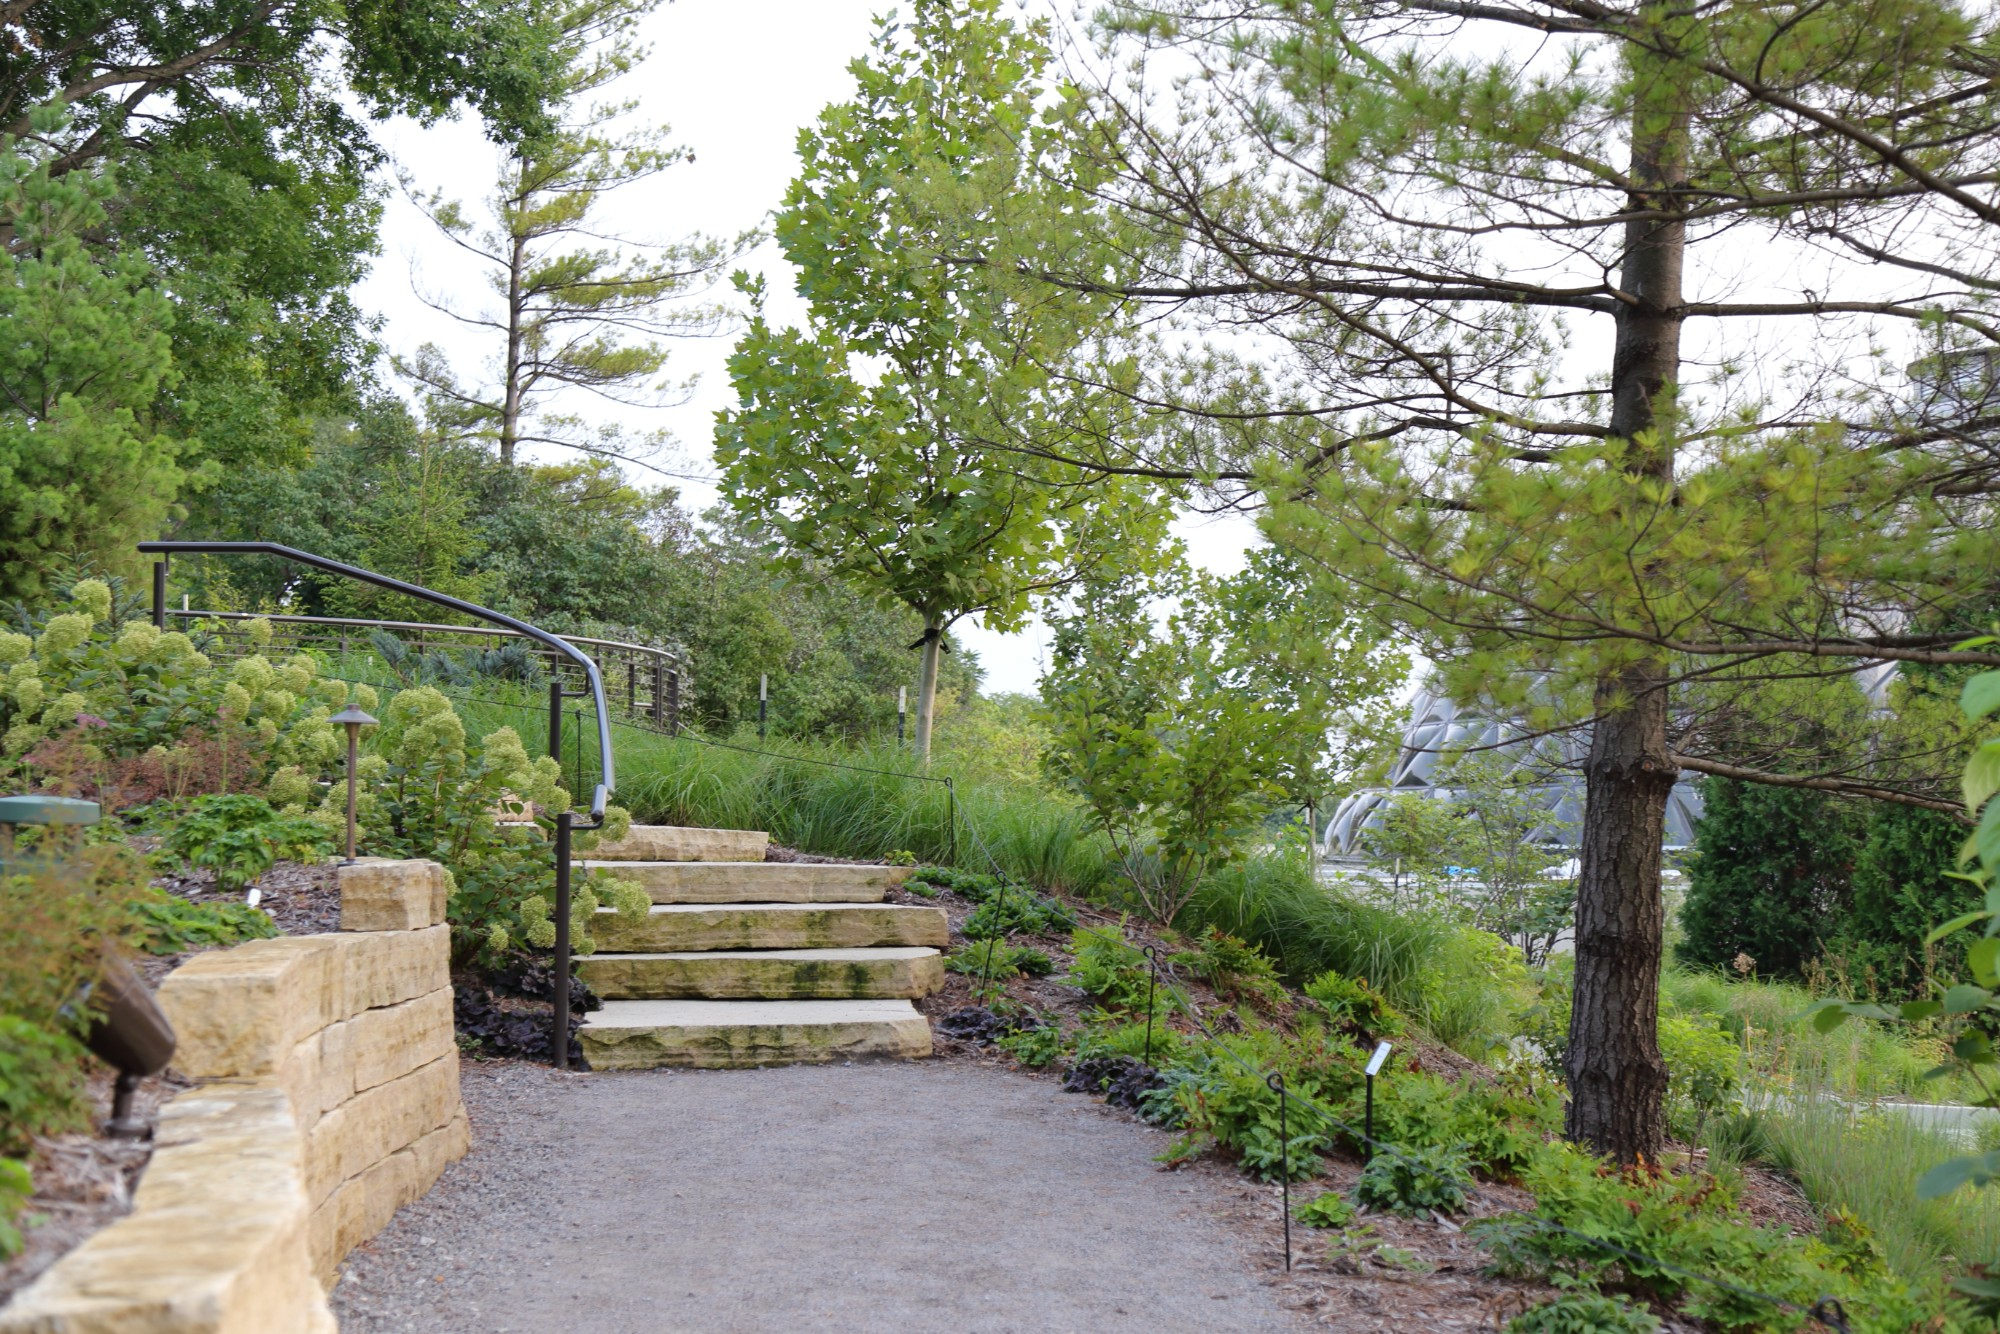 The path leading to the top of the hillside garden on August 30. Photo by Kelly Norris.